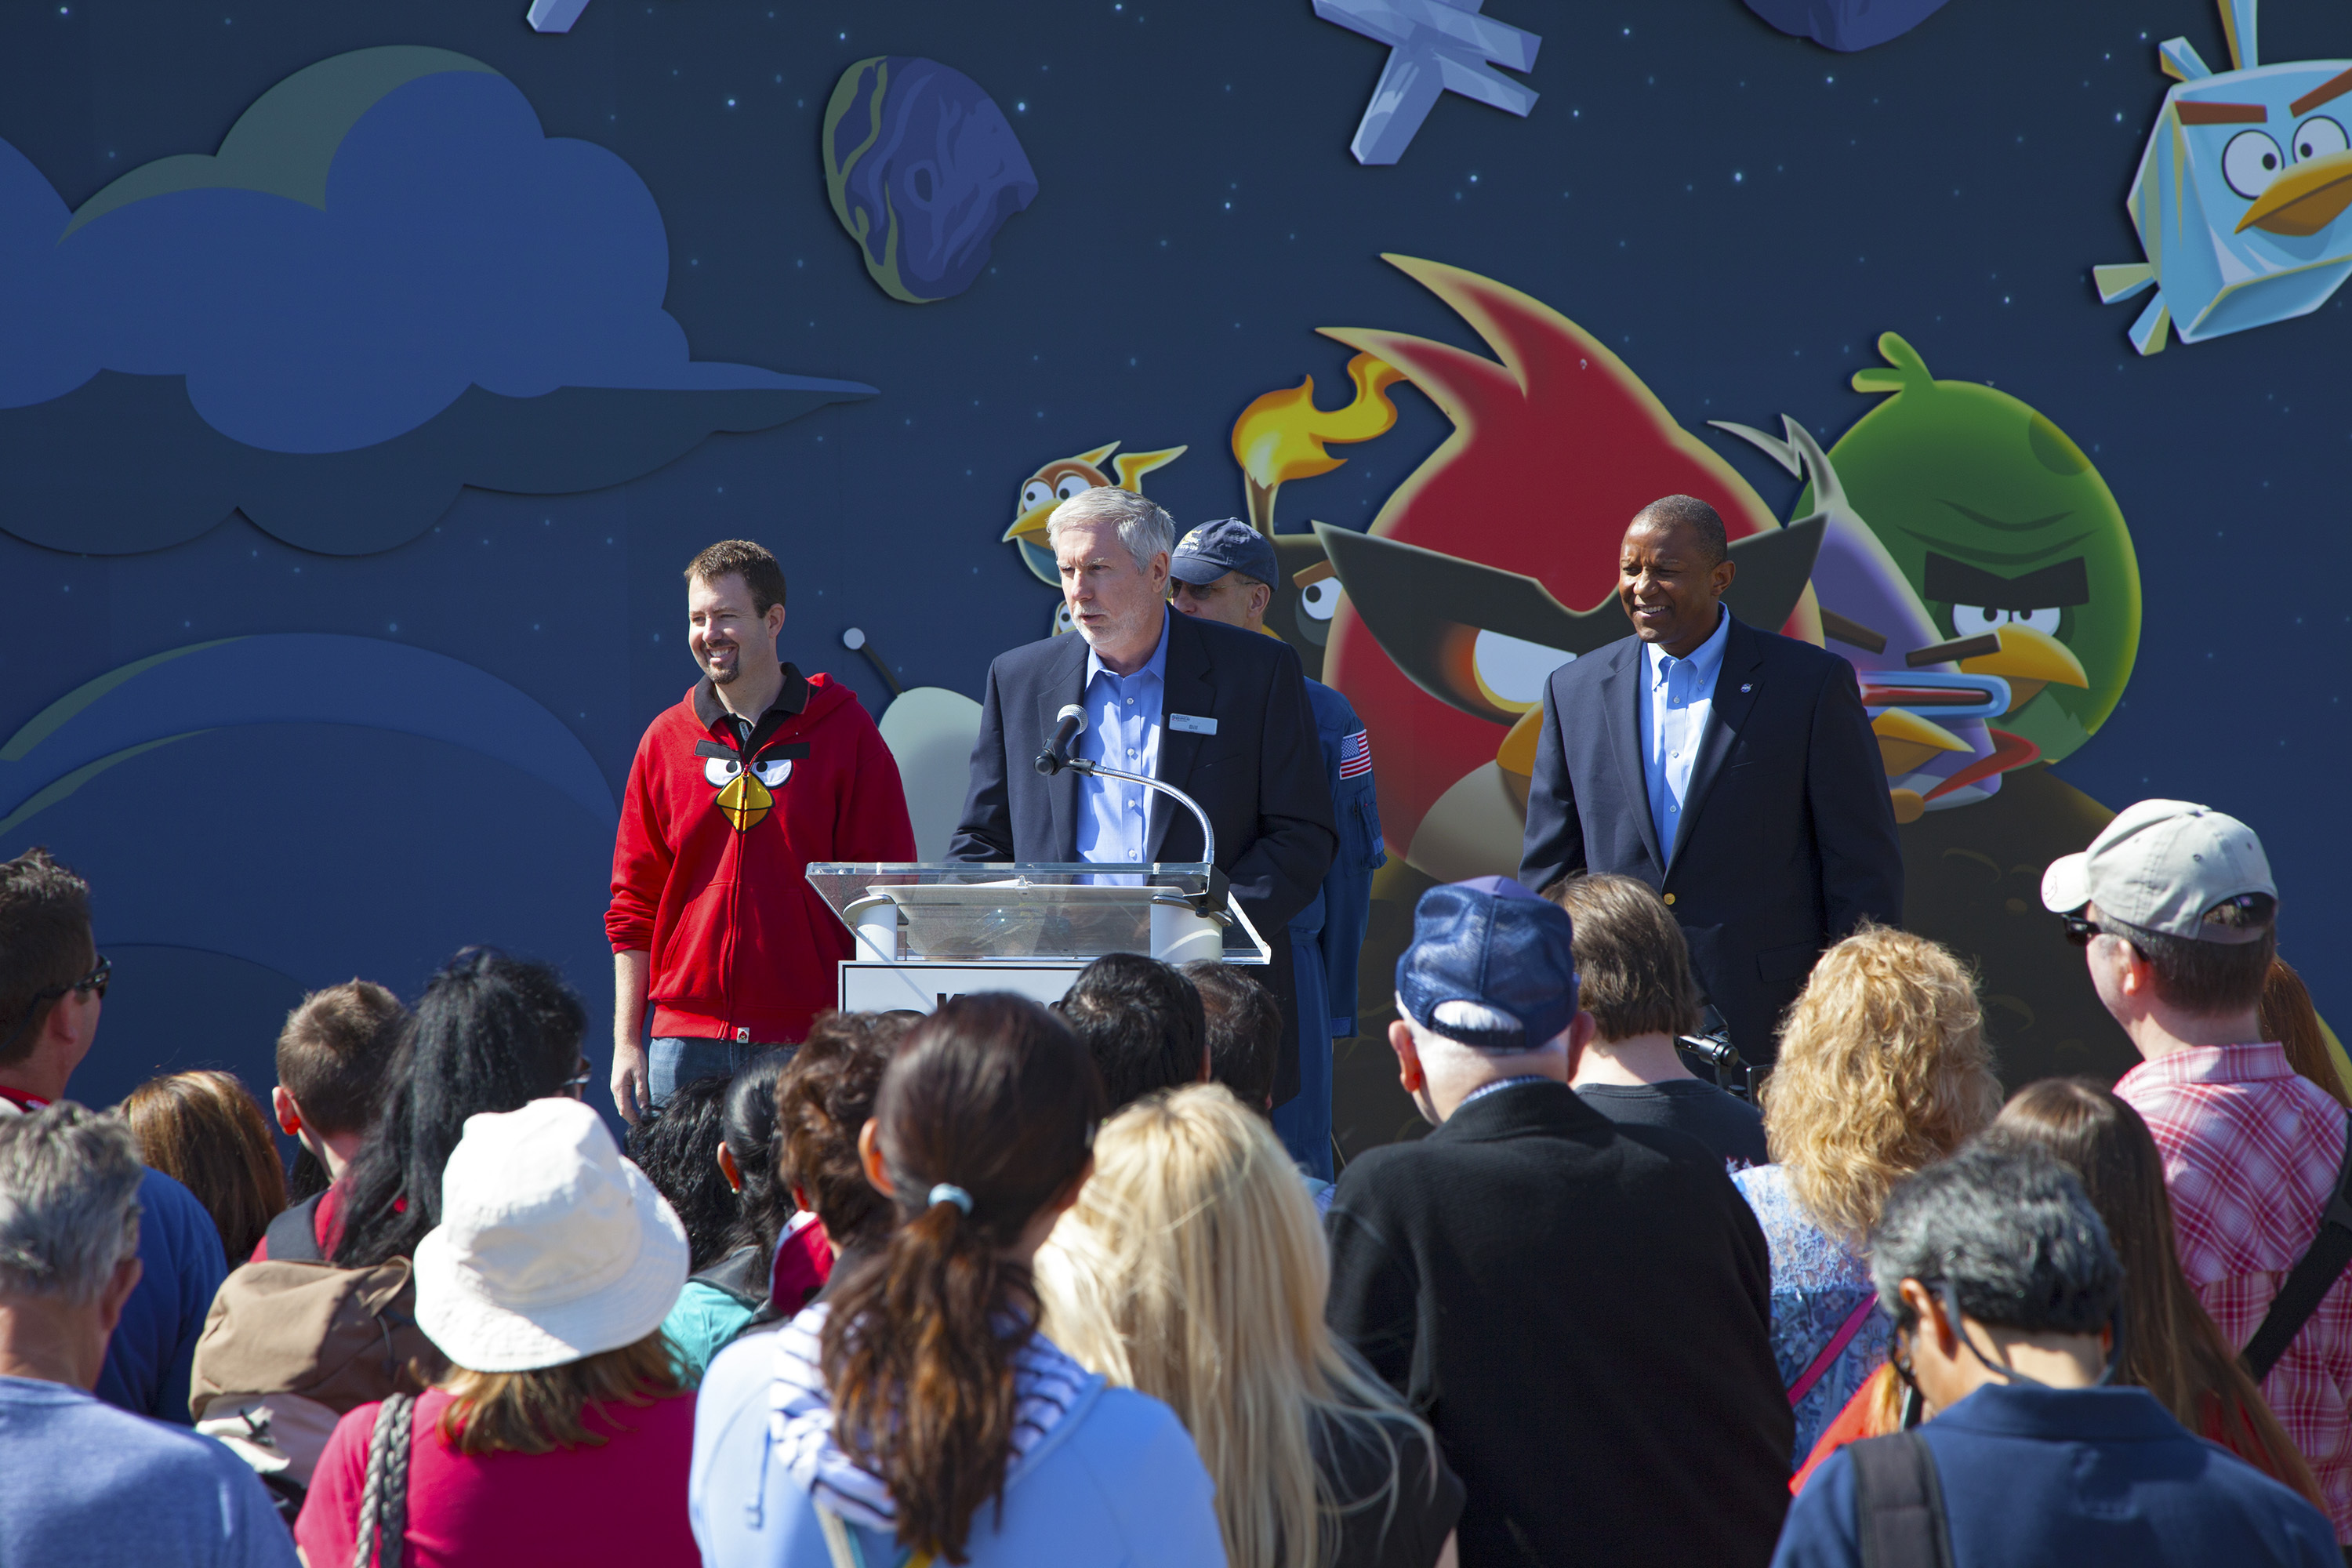 Angry Birds Space Exhibit Grand Opening Celebration